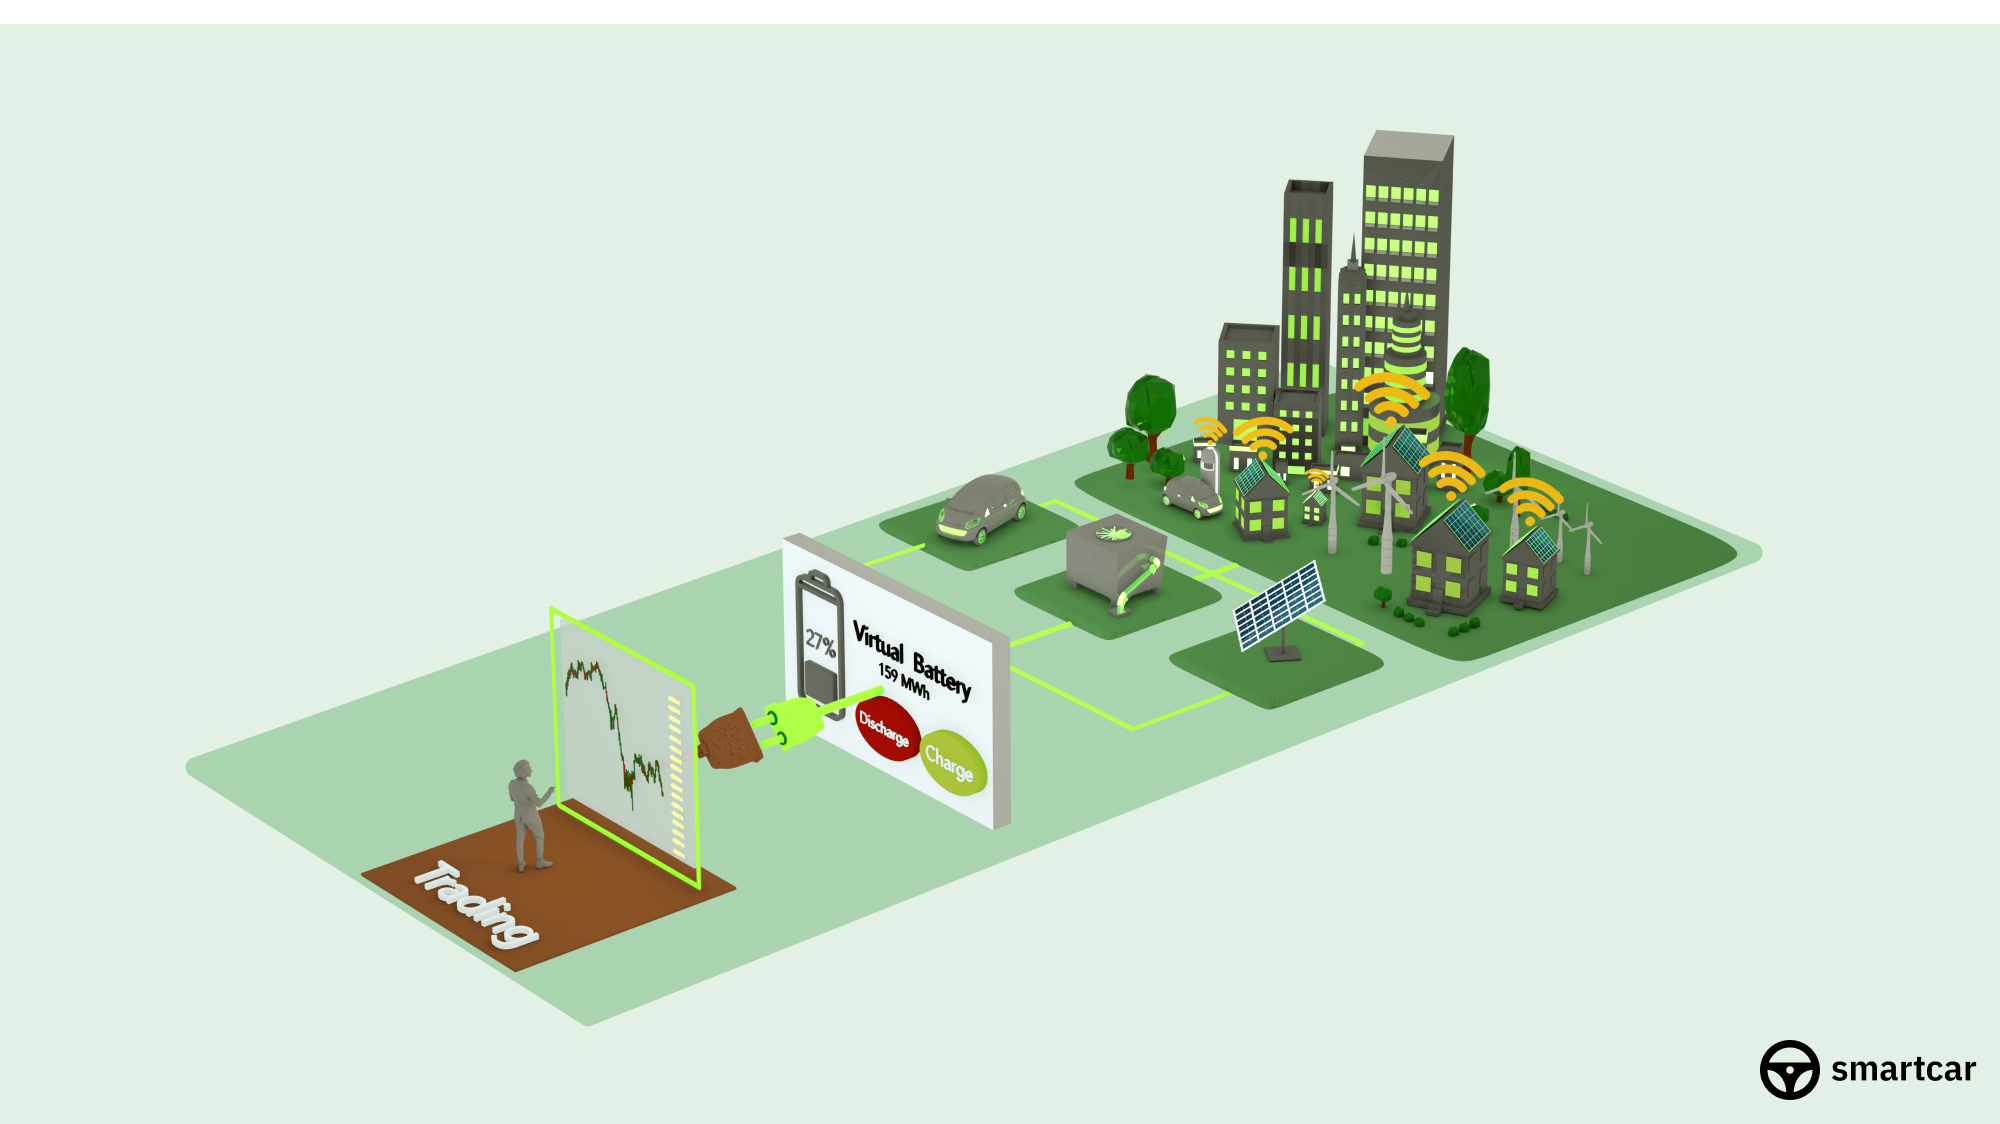 Illustration on a green background showing an energy trading platform in the front, then a virtual battery behind it, then a car, an energy generator, and a solar panel behind it, and then multiple wind turbines, houses, and a car behind that. The houses and the car have WiFi signals above them.